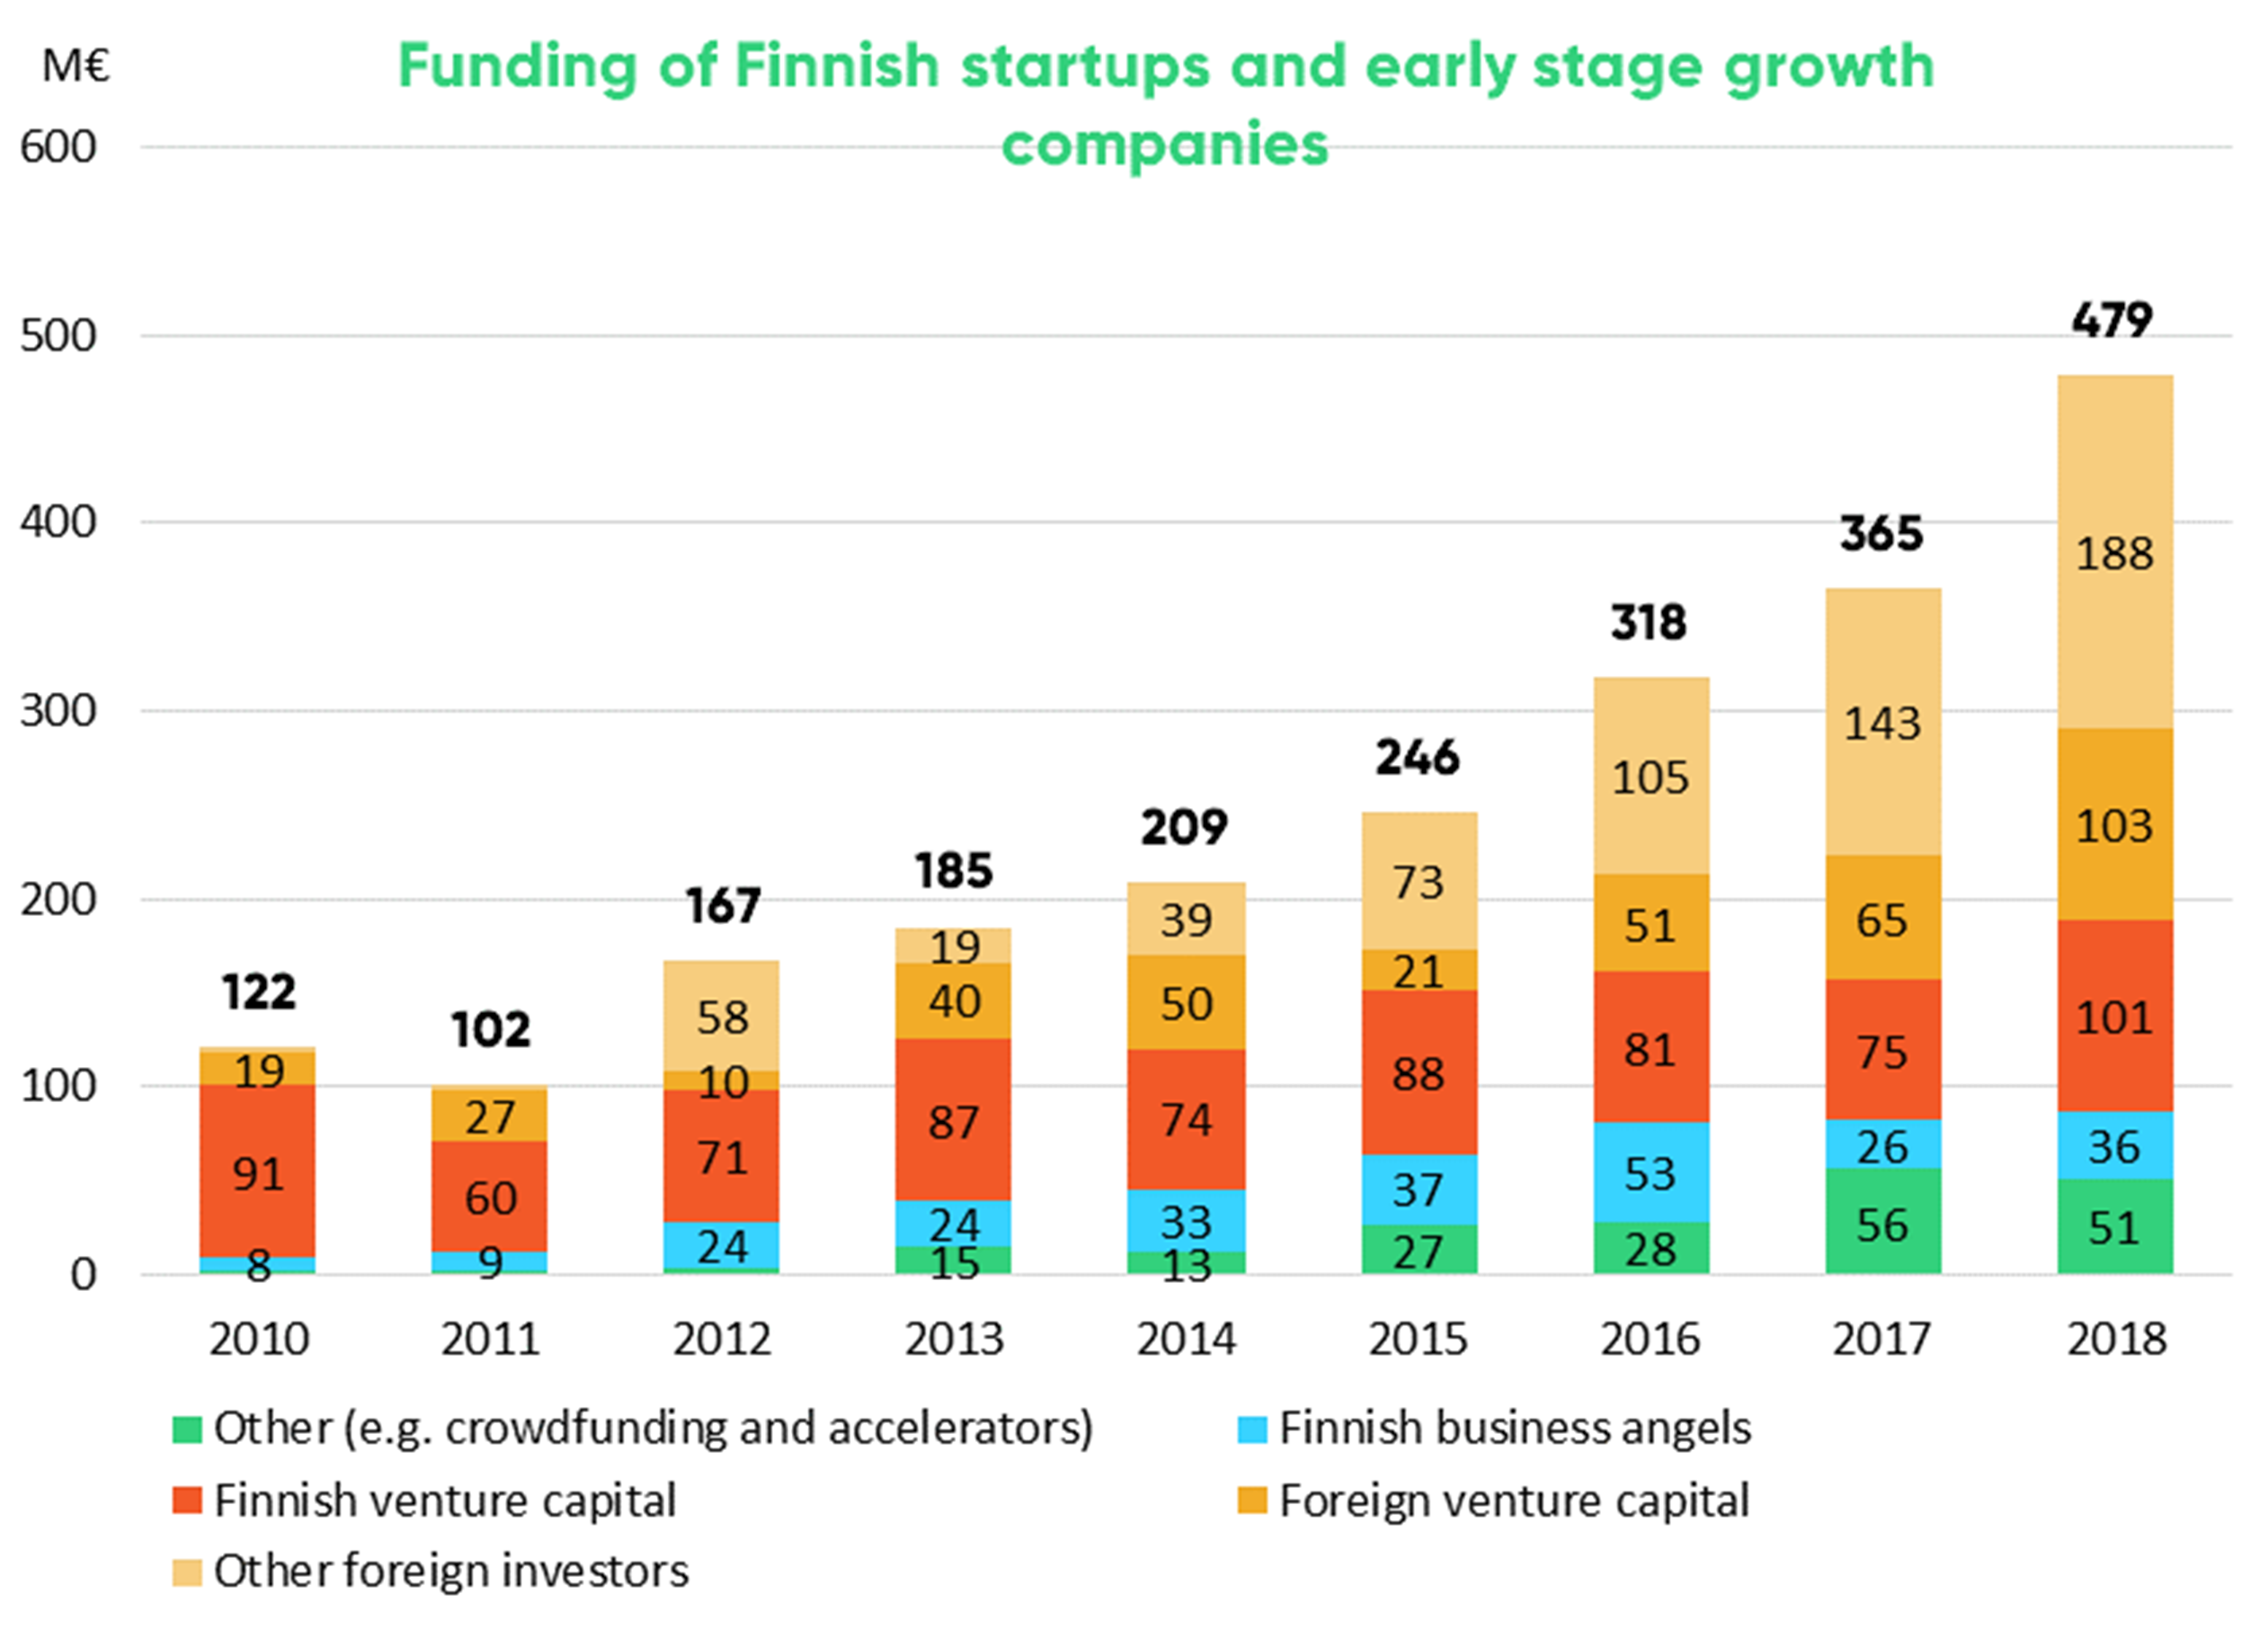 Foreign venture capital investments grew 58 per cent and other foreign investments rose by 31 per cent year on year.